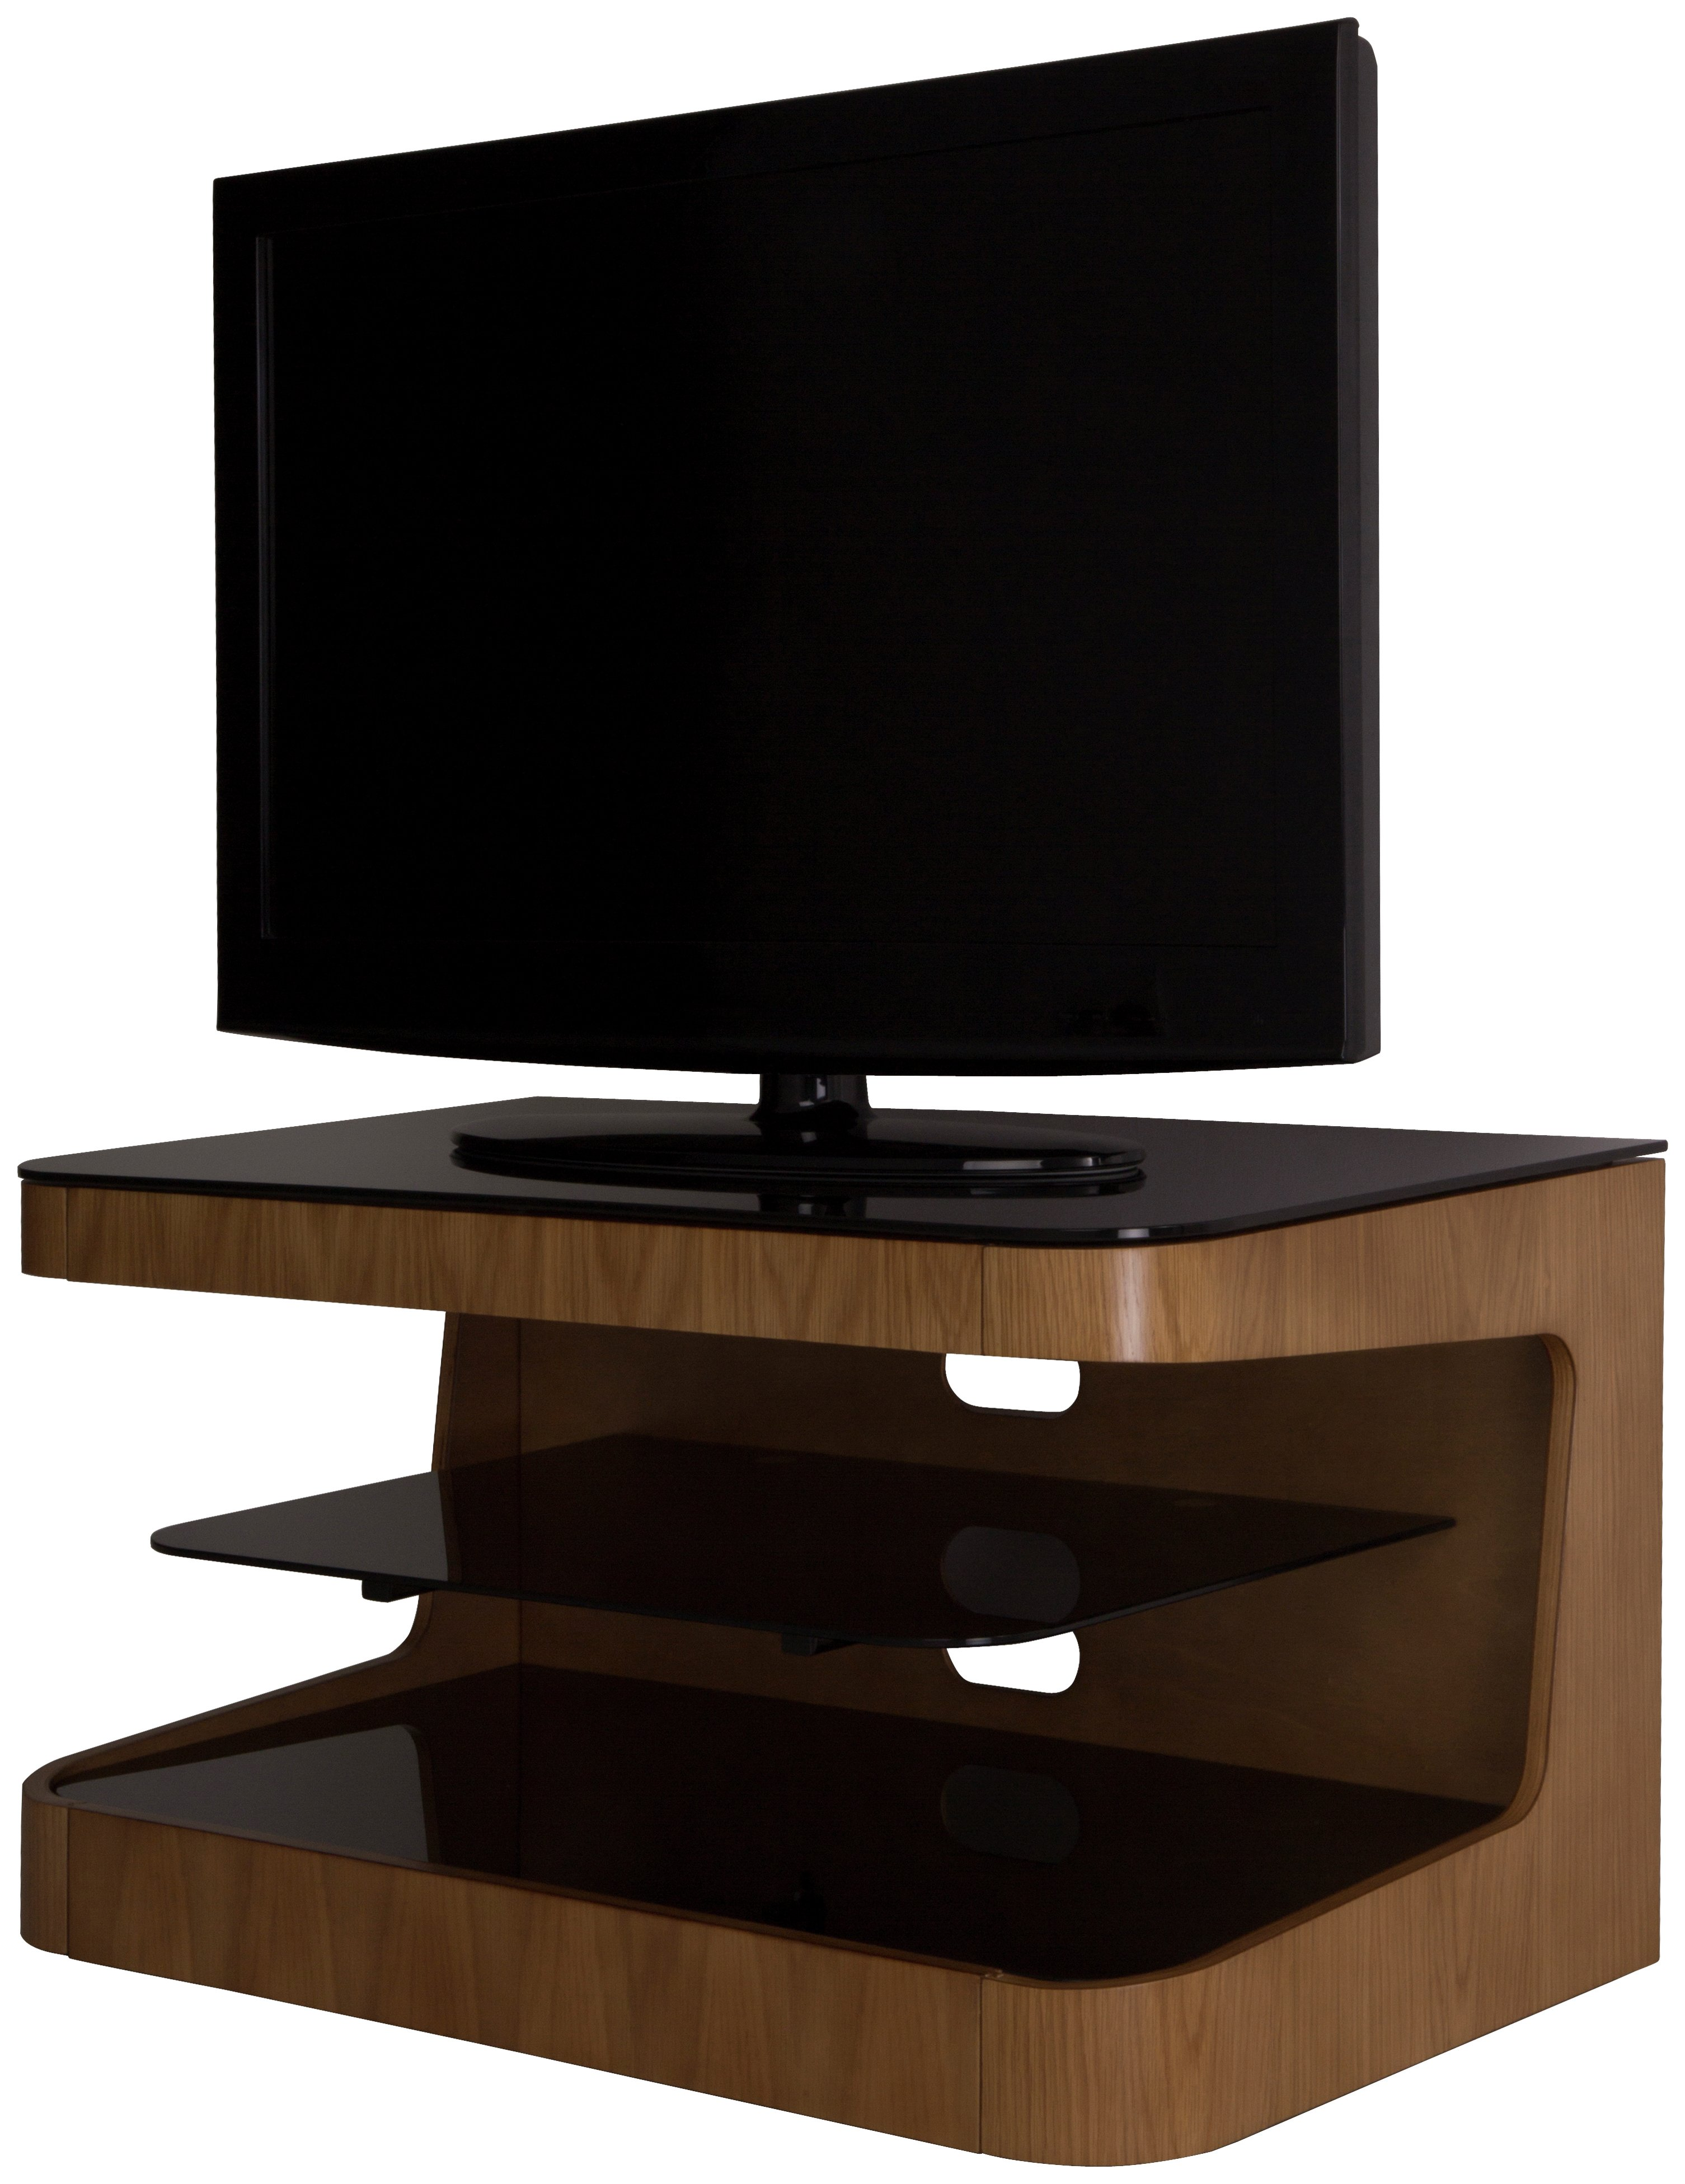 compare 40 inch tv stands prices and deals piu price it up. Black Bedroom Furniture Sets. Home Design Ideas